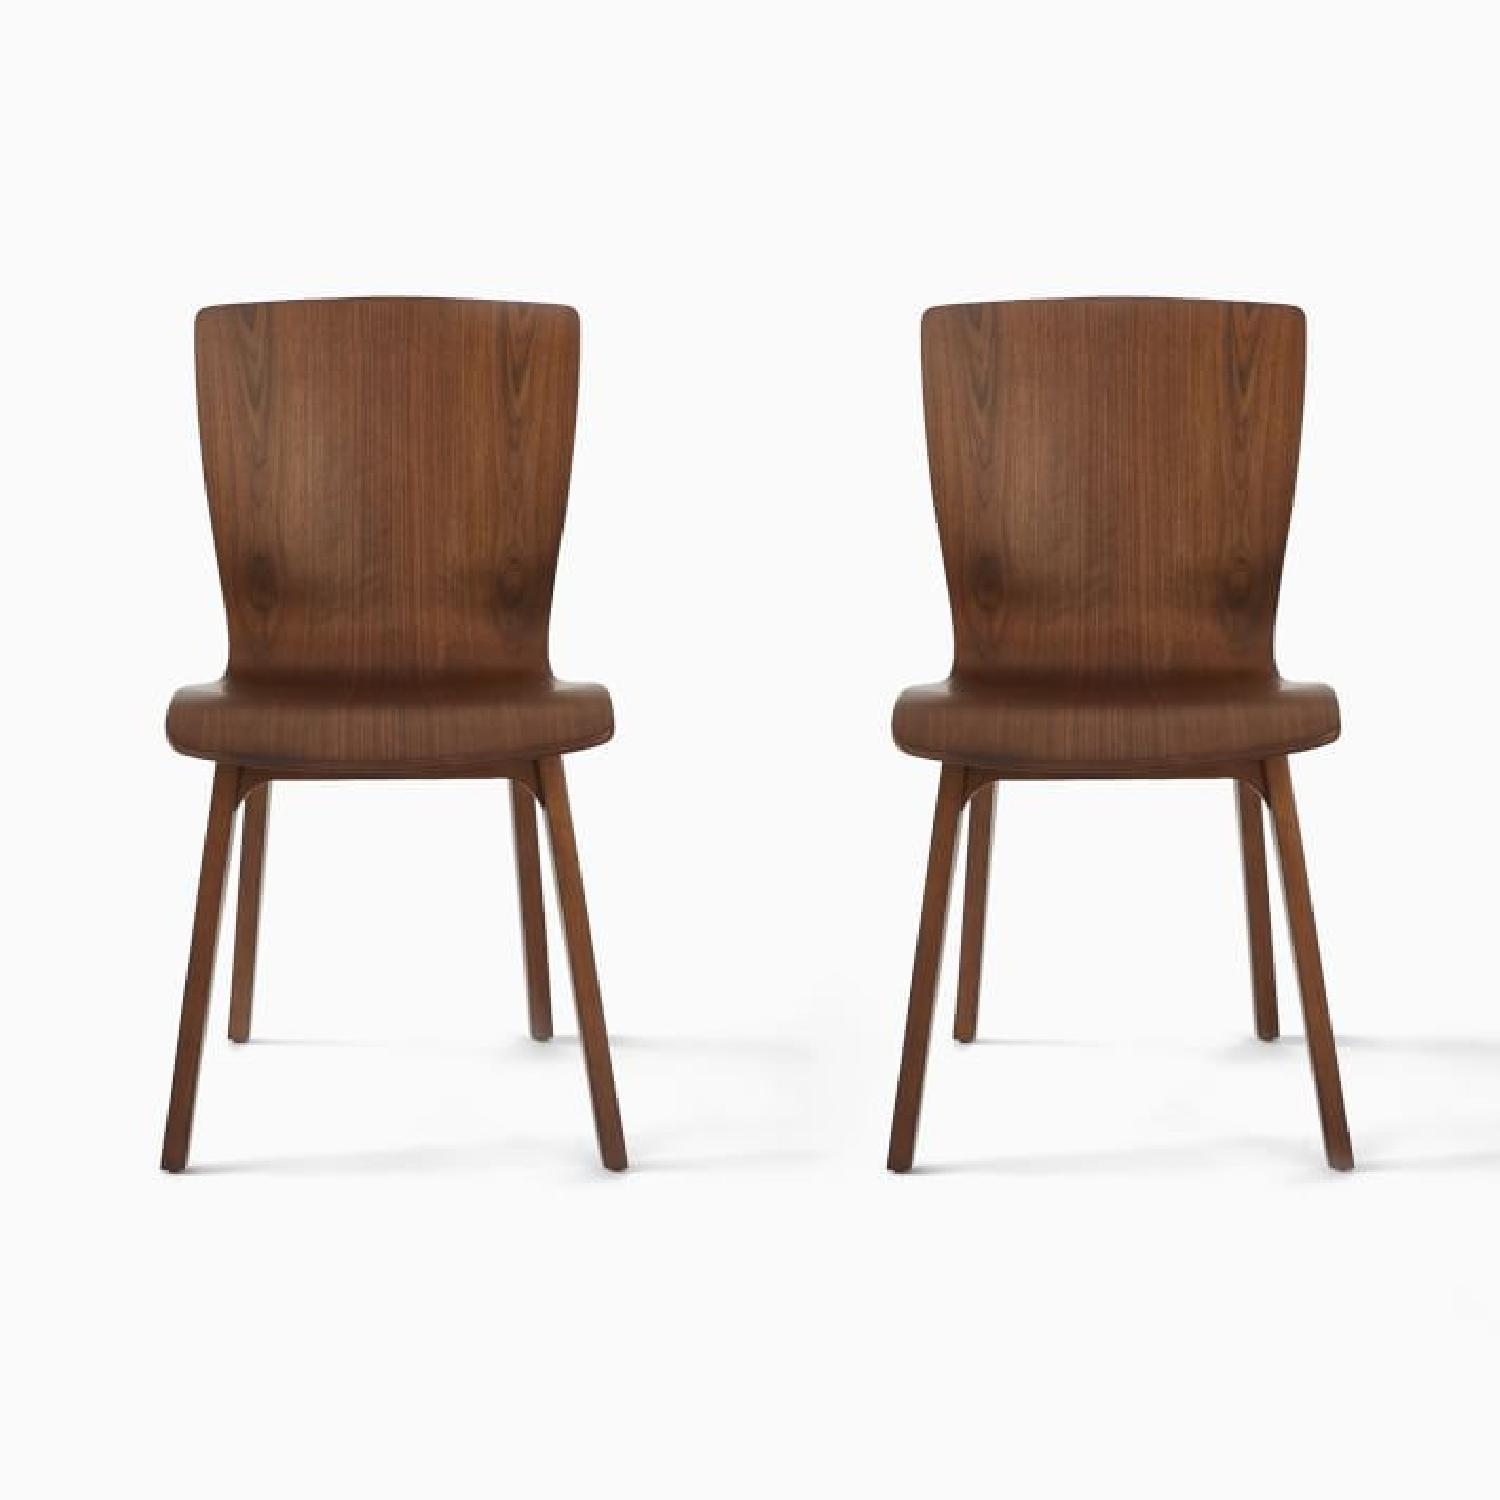 West Elm Crest Bentwood Dining Chairs (Set of 2) - image-6